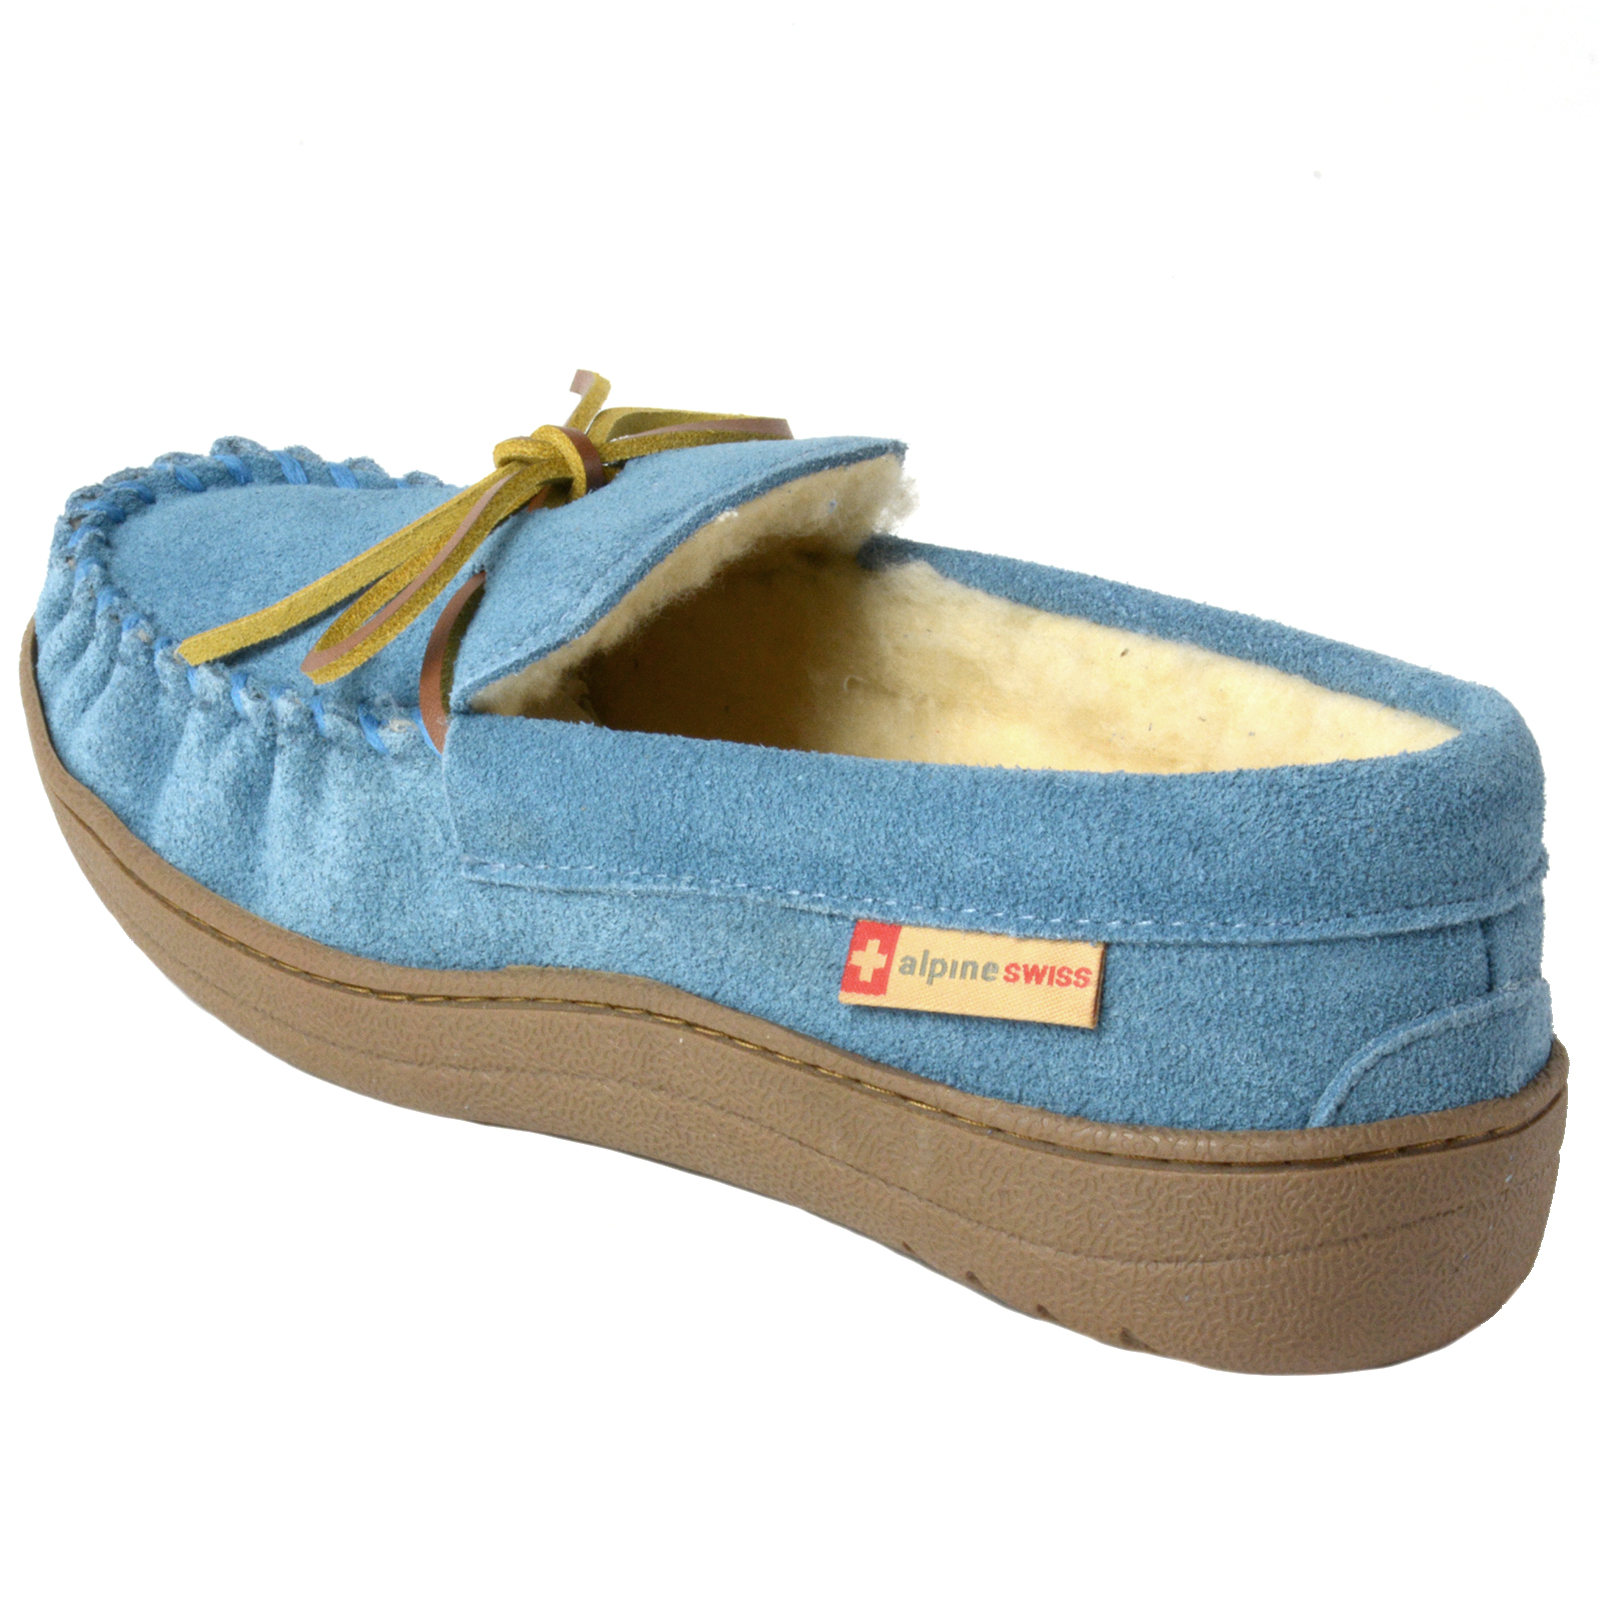 Alpine-Swiss-Sabine-Womens-Suede-Shearling-Moccasin-Slippers-House-Shoes-Slip-On miniature 20